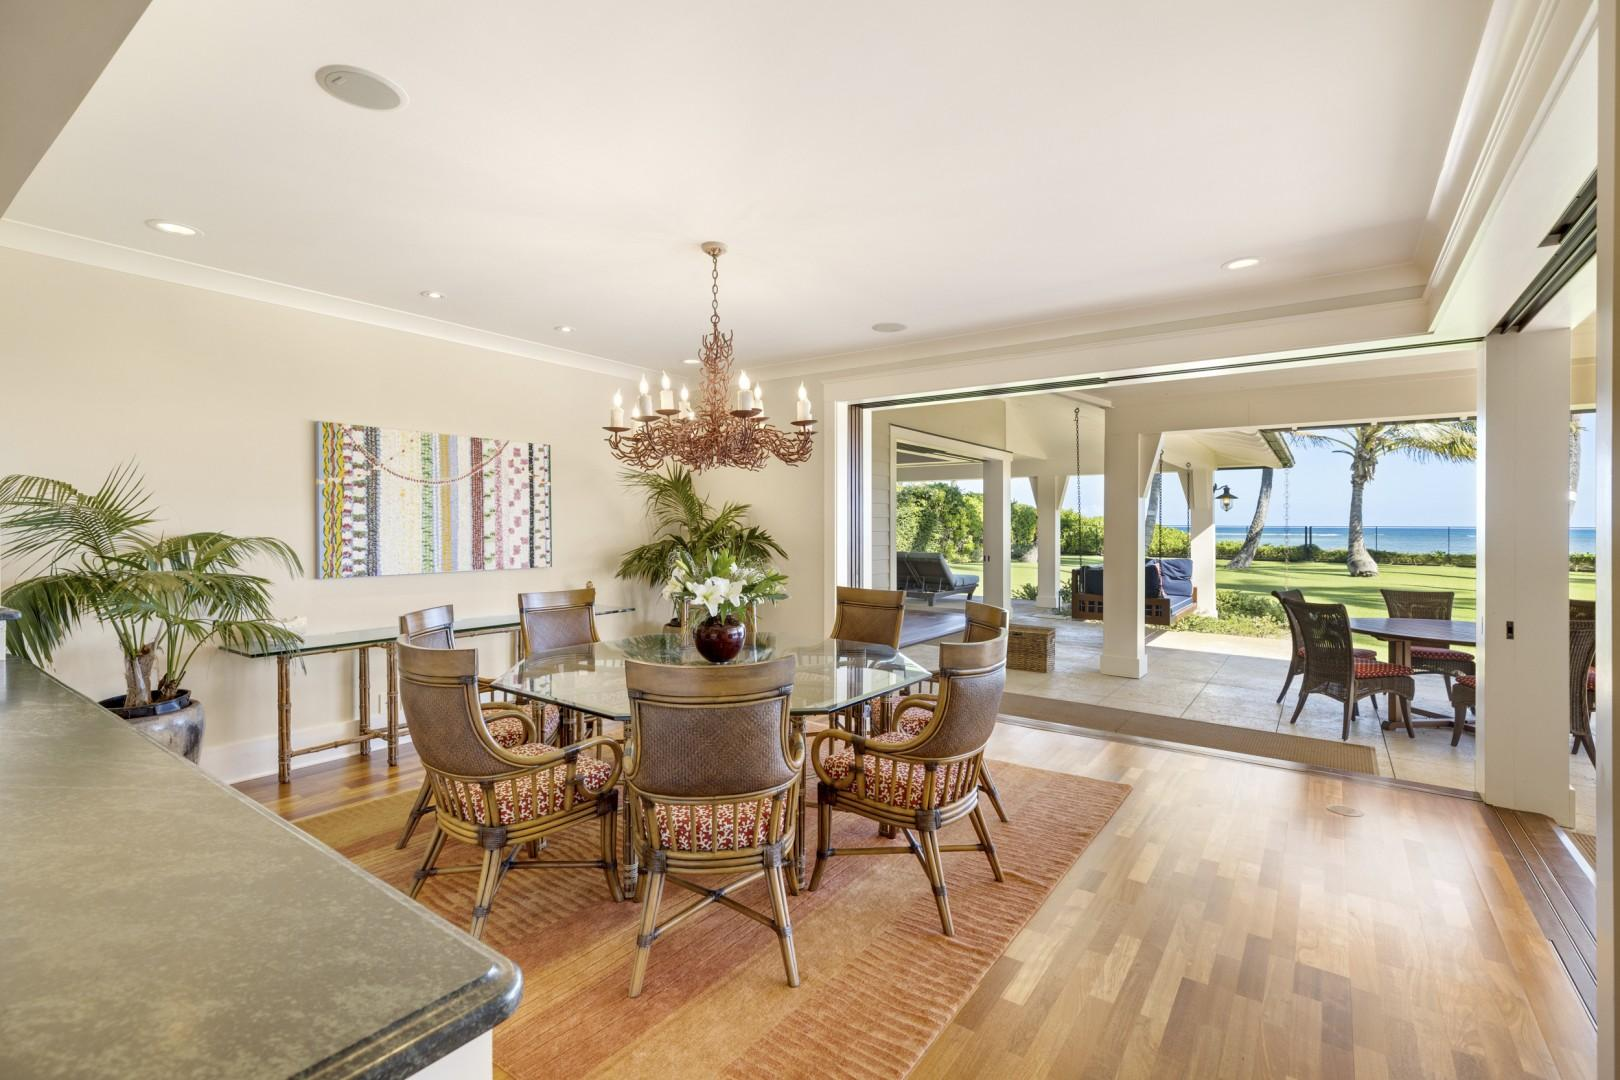 Dining area with ocean views